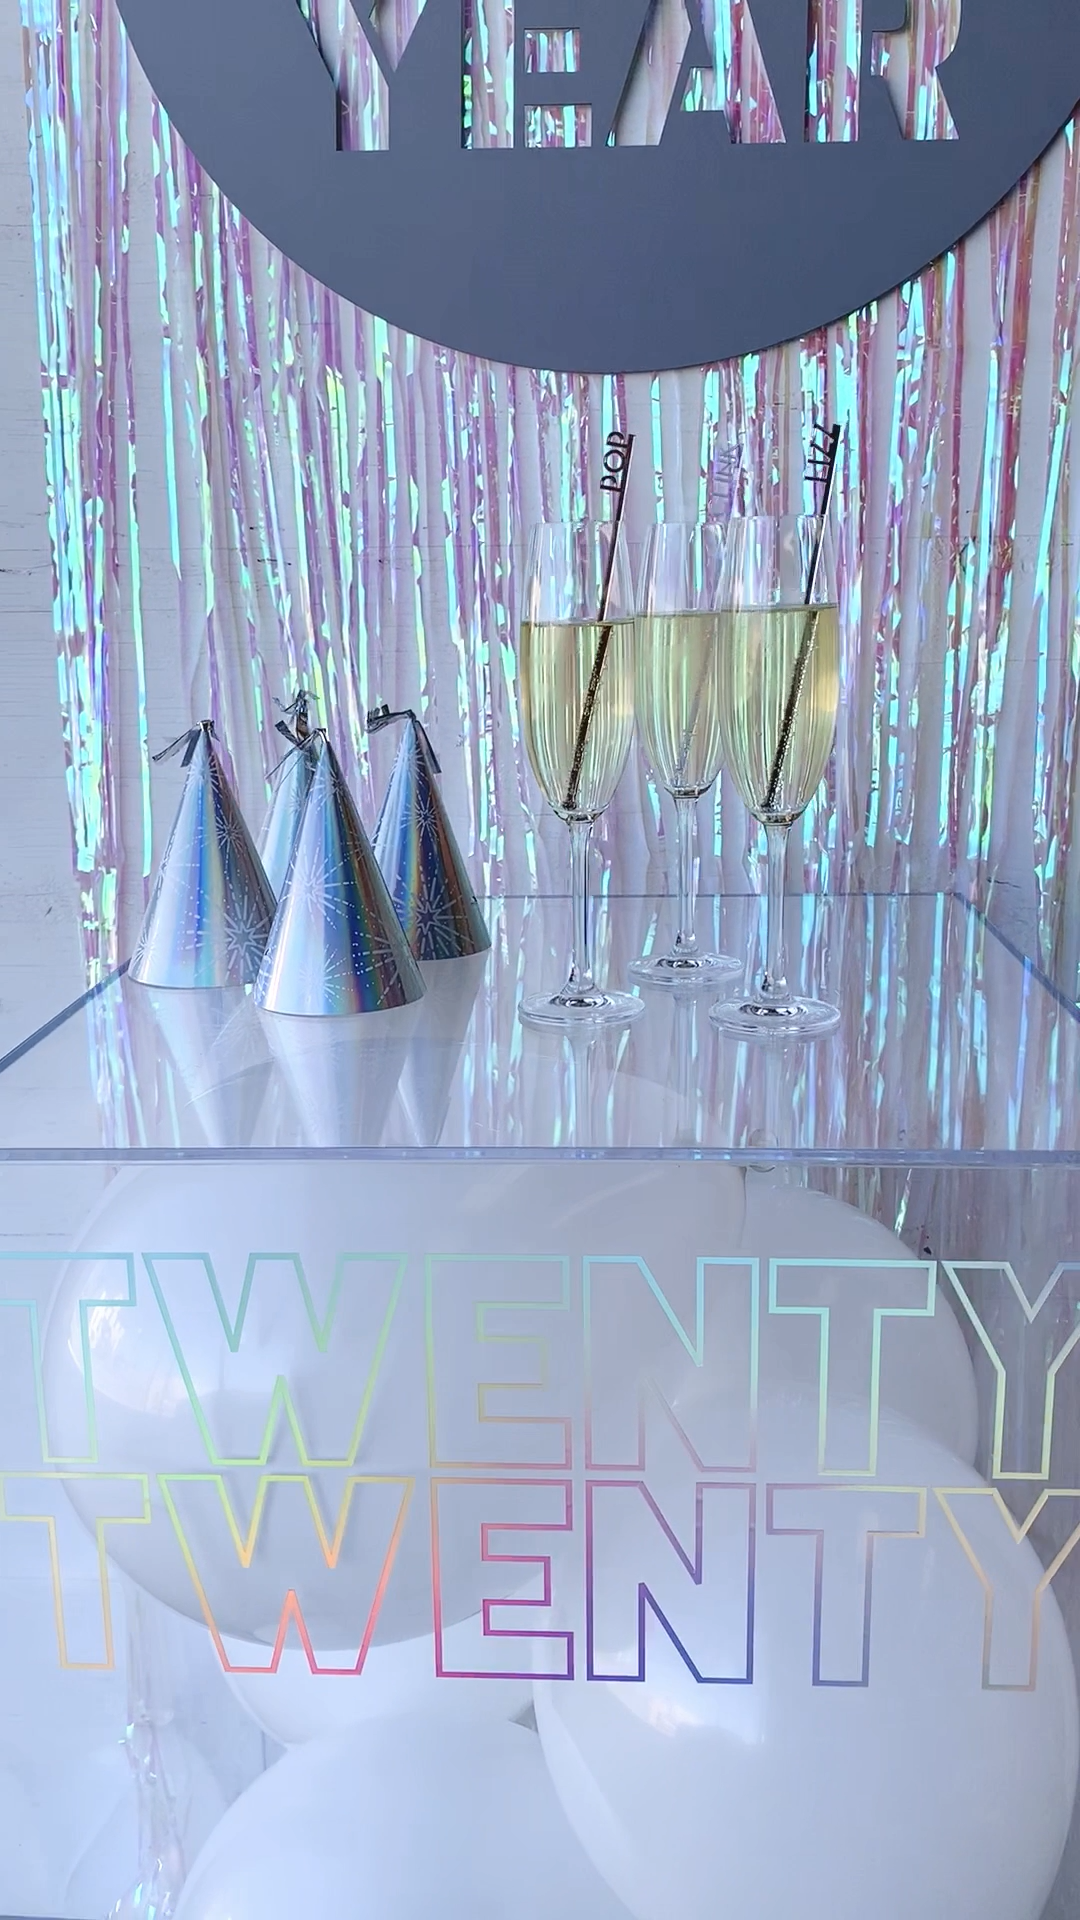 We love the current trend of all things iridescent & holographic, so we went all out with it for our decor. Think: a disco ball that exploded everywhere.  #newyearseve #newyearseveparty #newyears2020 #nye2020 #iridescent #holographic